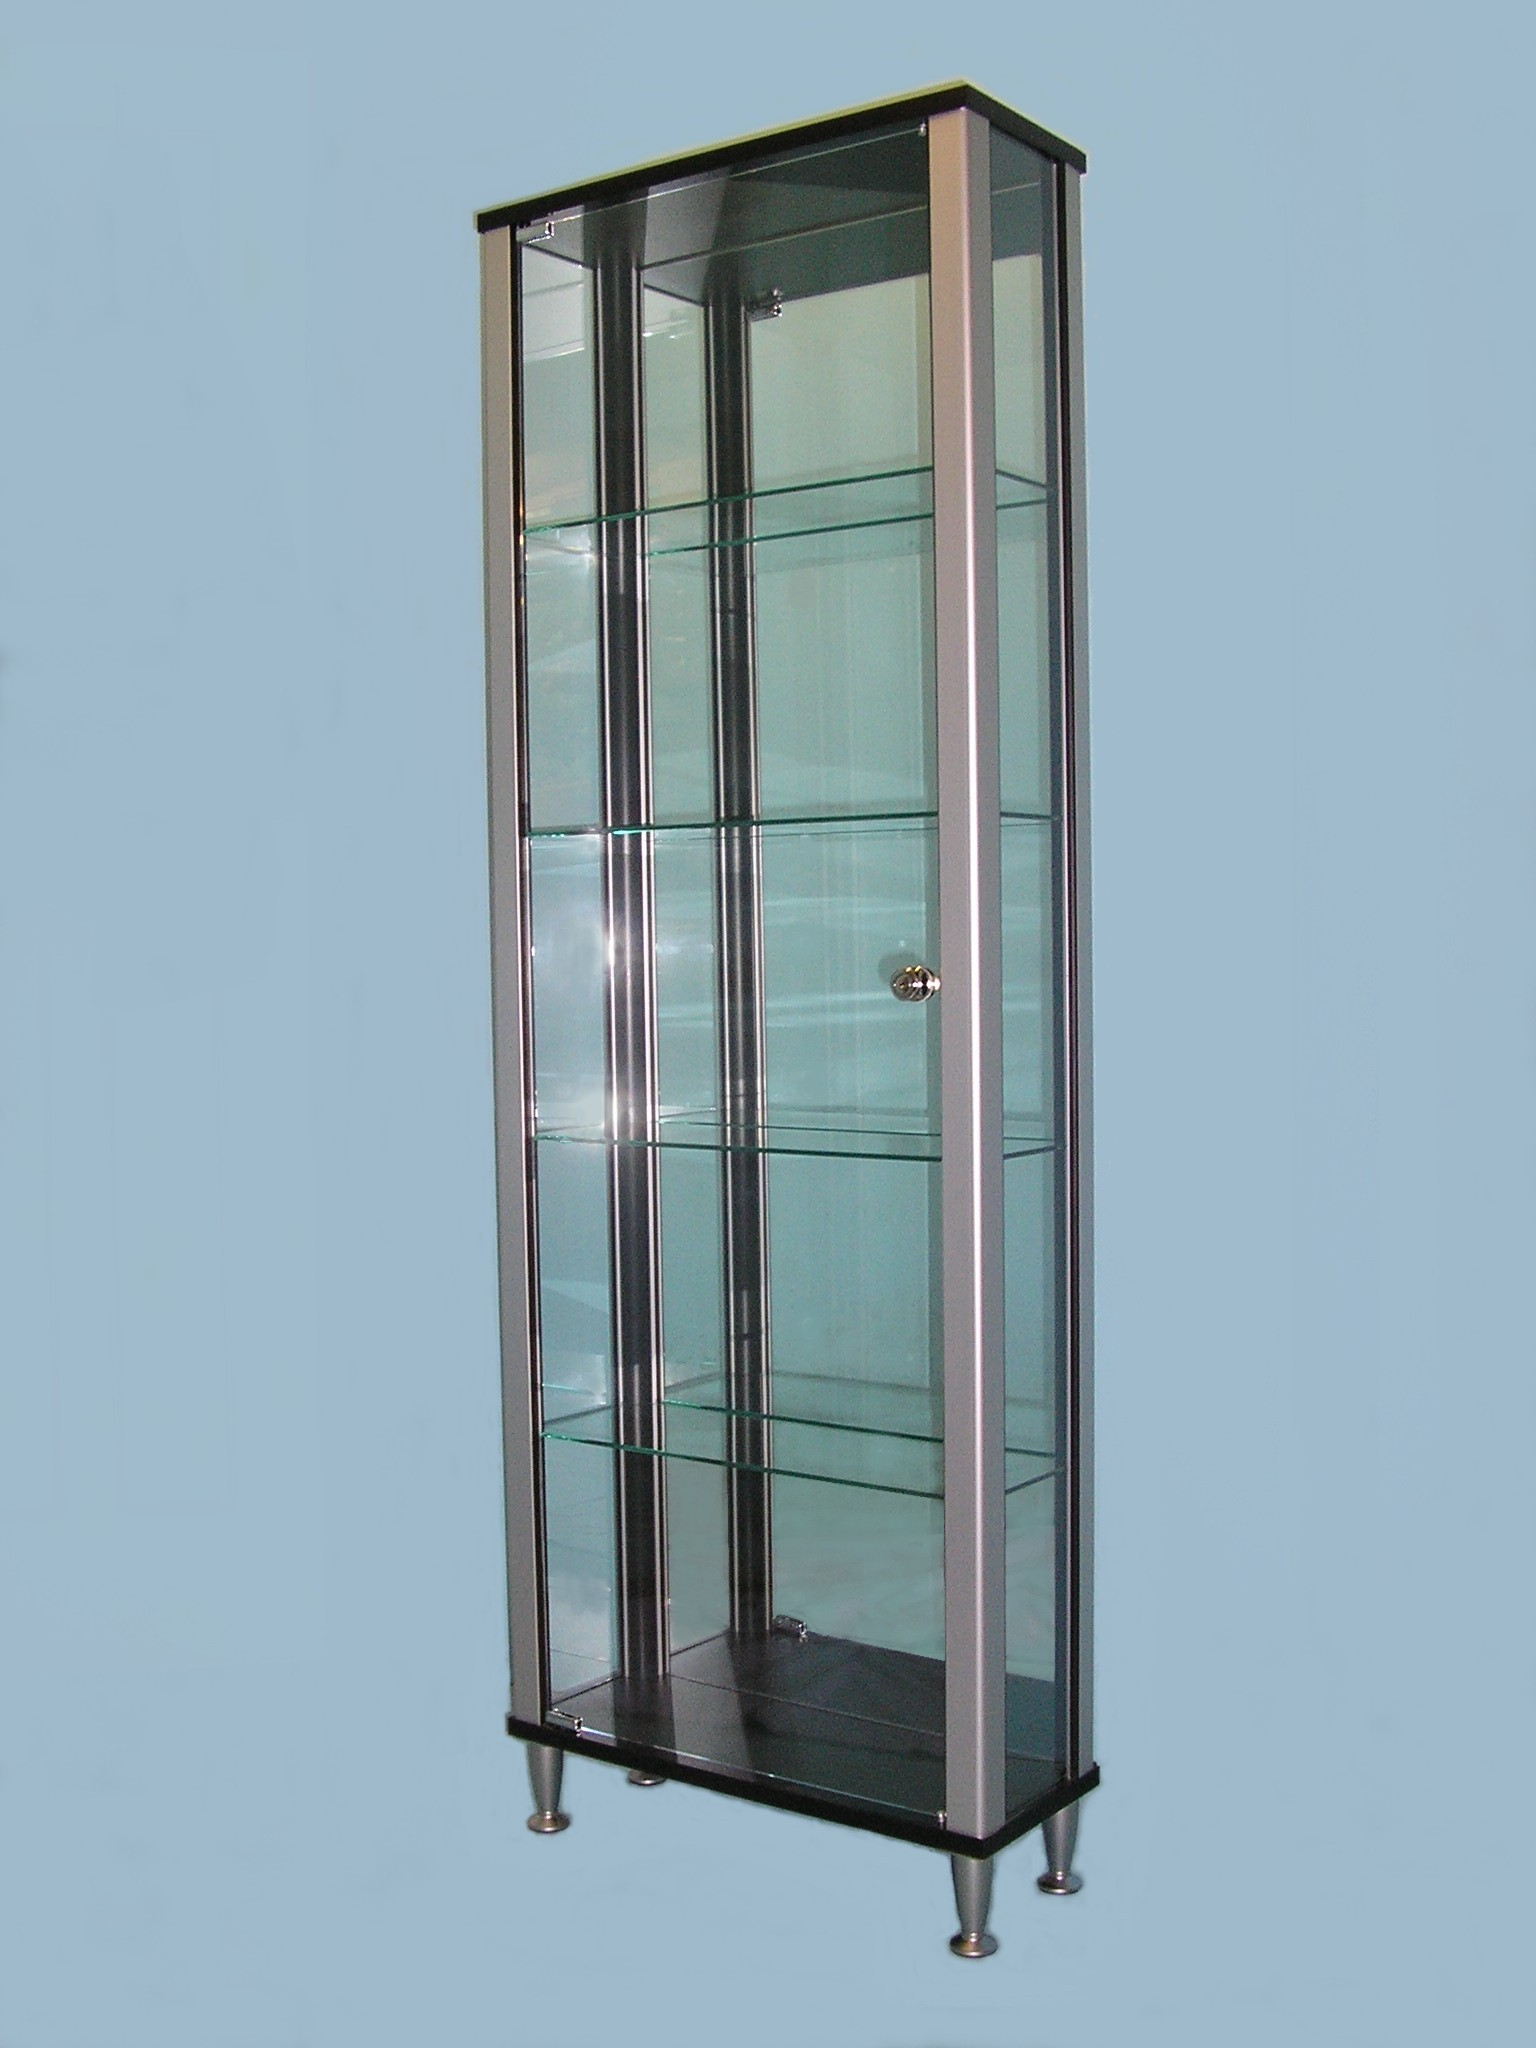 Designex Cabinets D61 black tower glass display cabinet